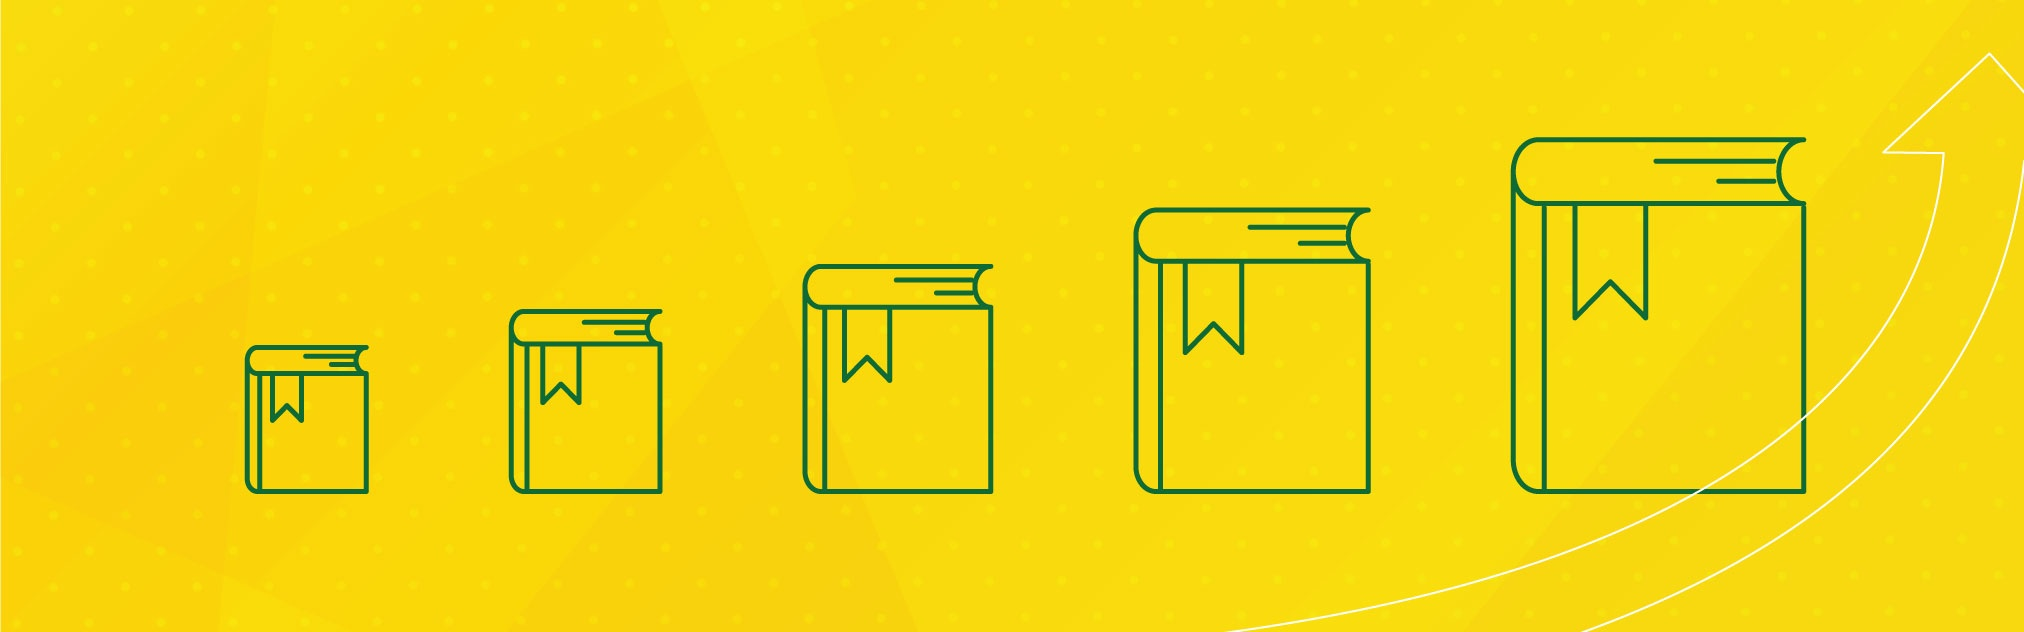 Green line illustration of books on a yellow background